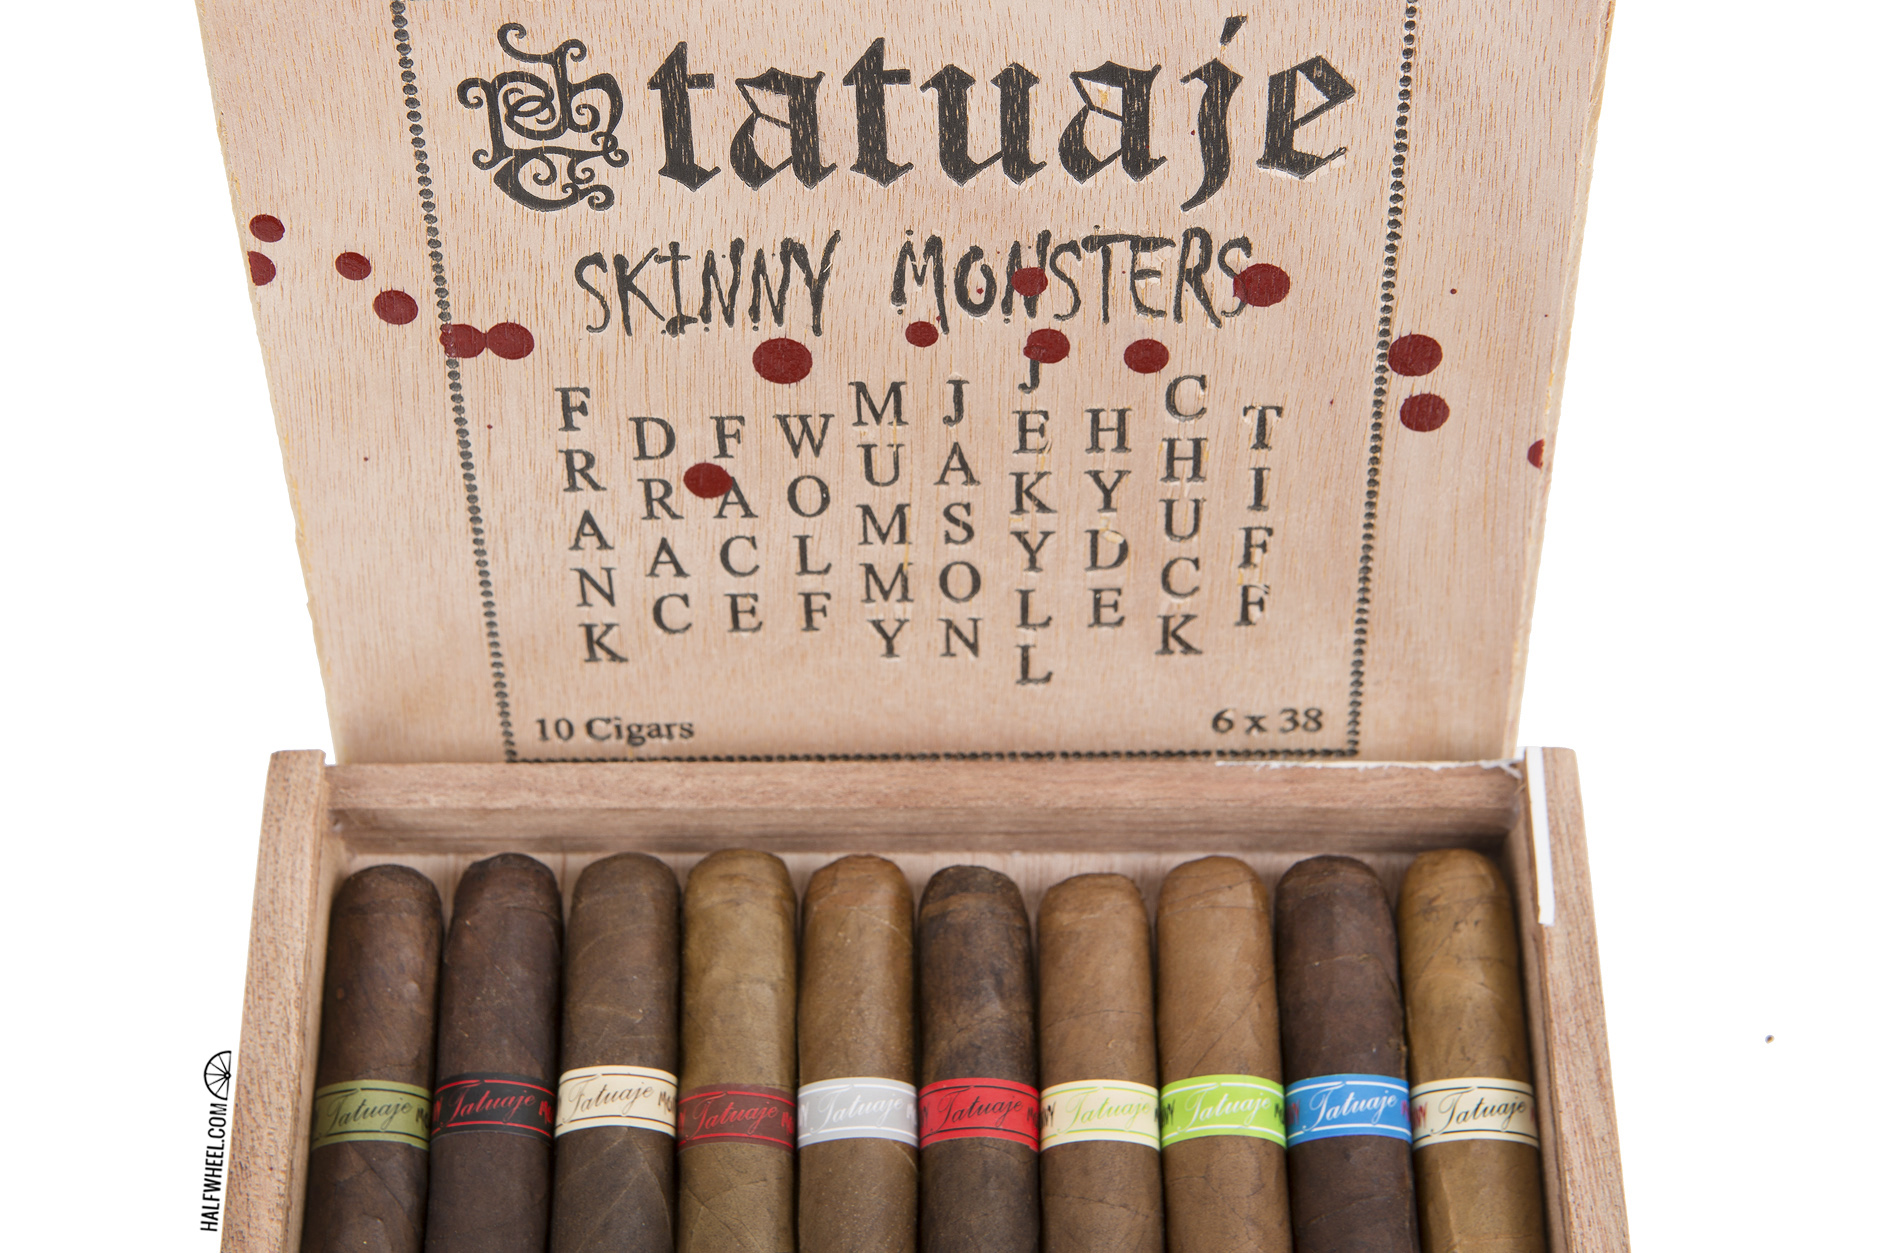 Tatuaje Skinny Monsters Box 2